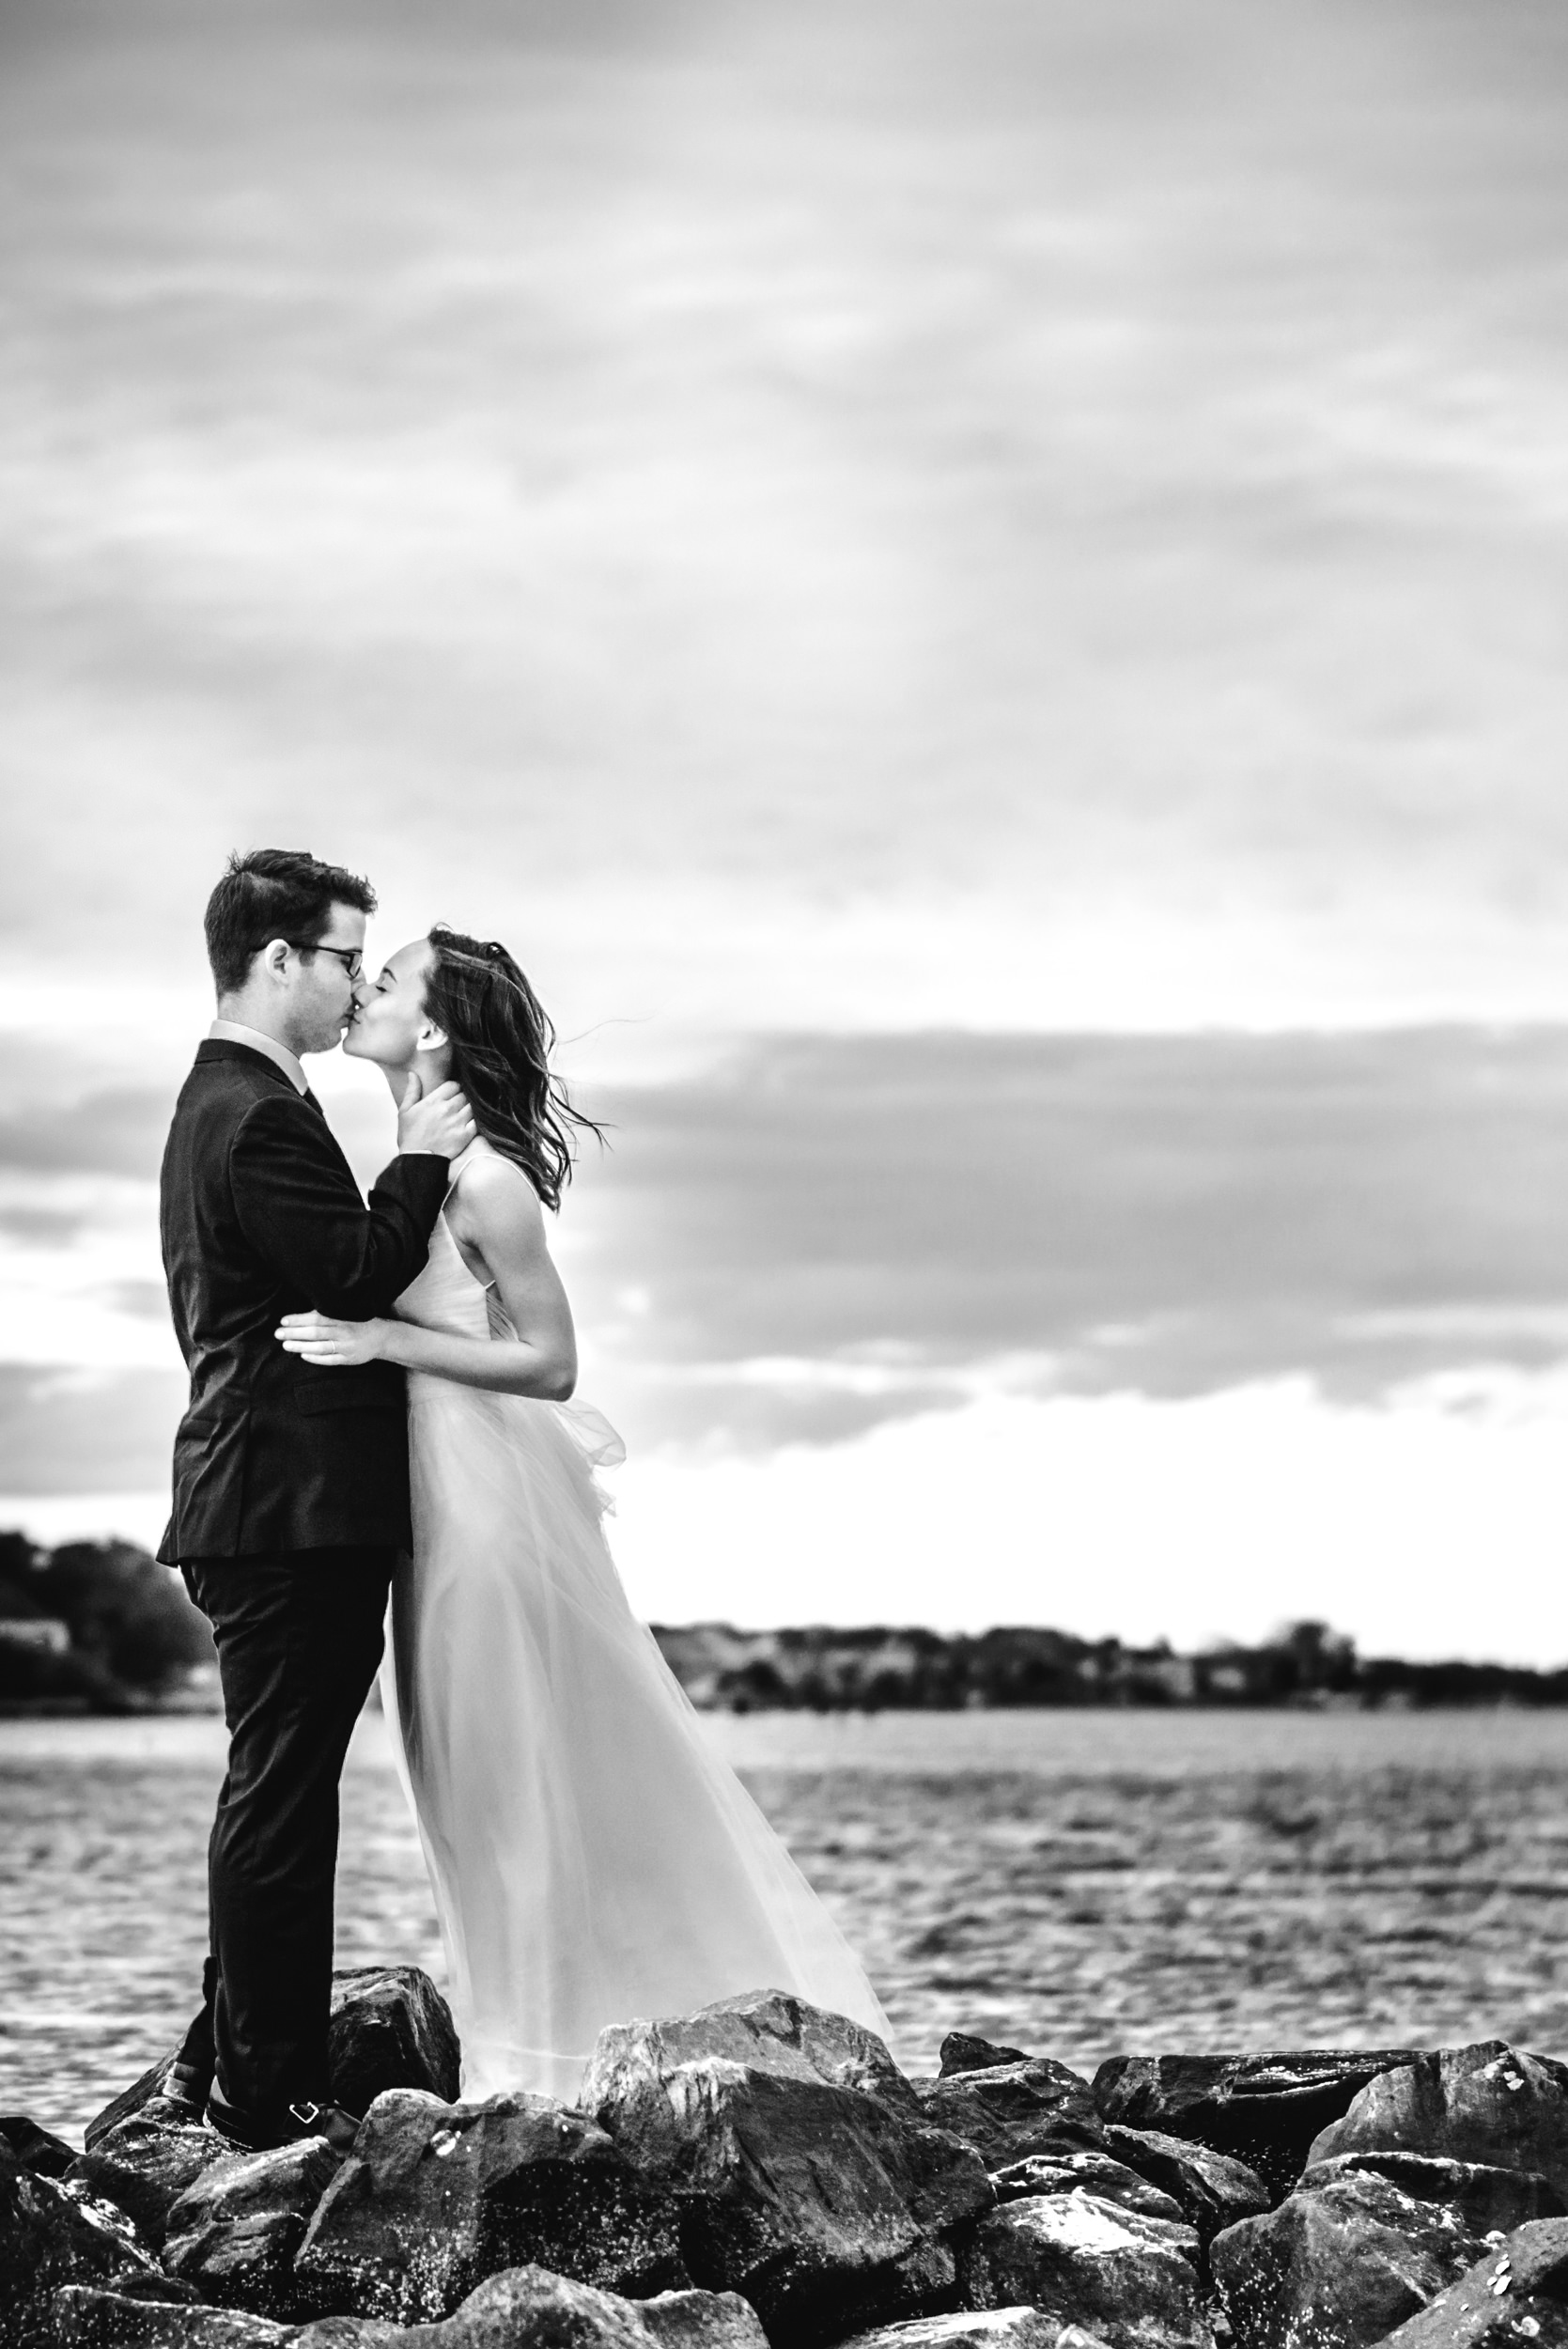 elopement-and-intimate-wedding-photographer-virginia-beach-melissa-bliss-photography.jpg